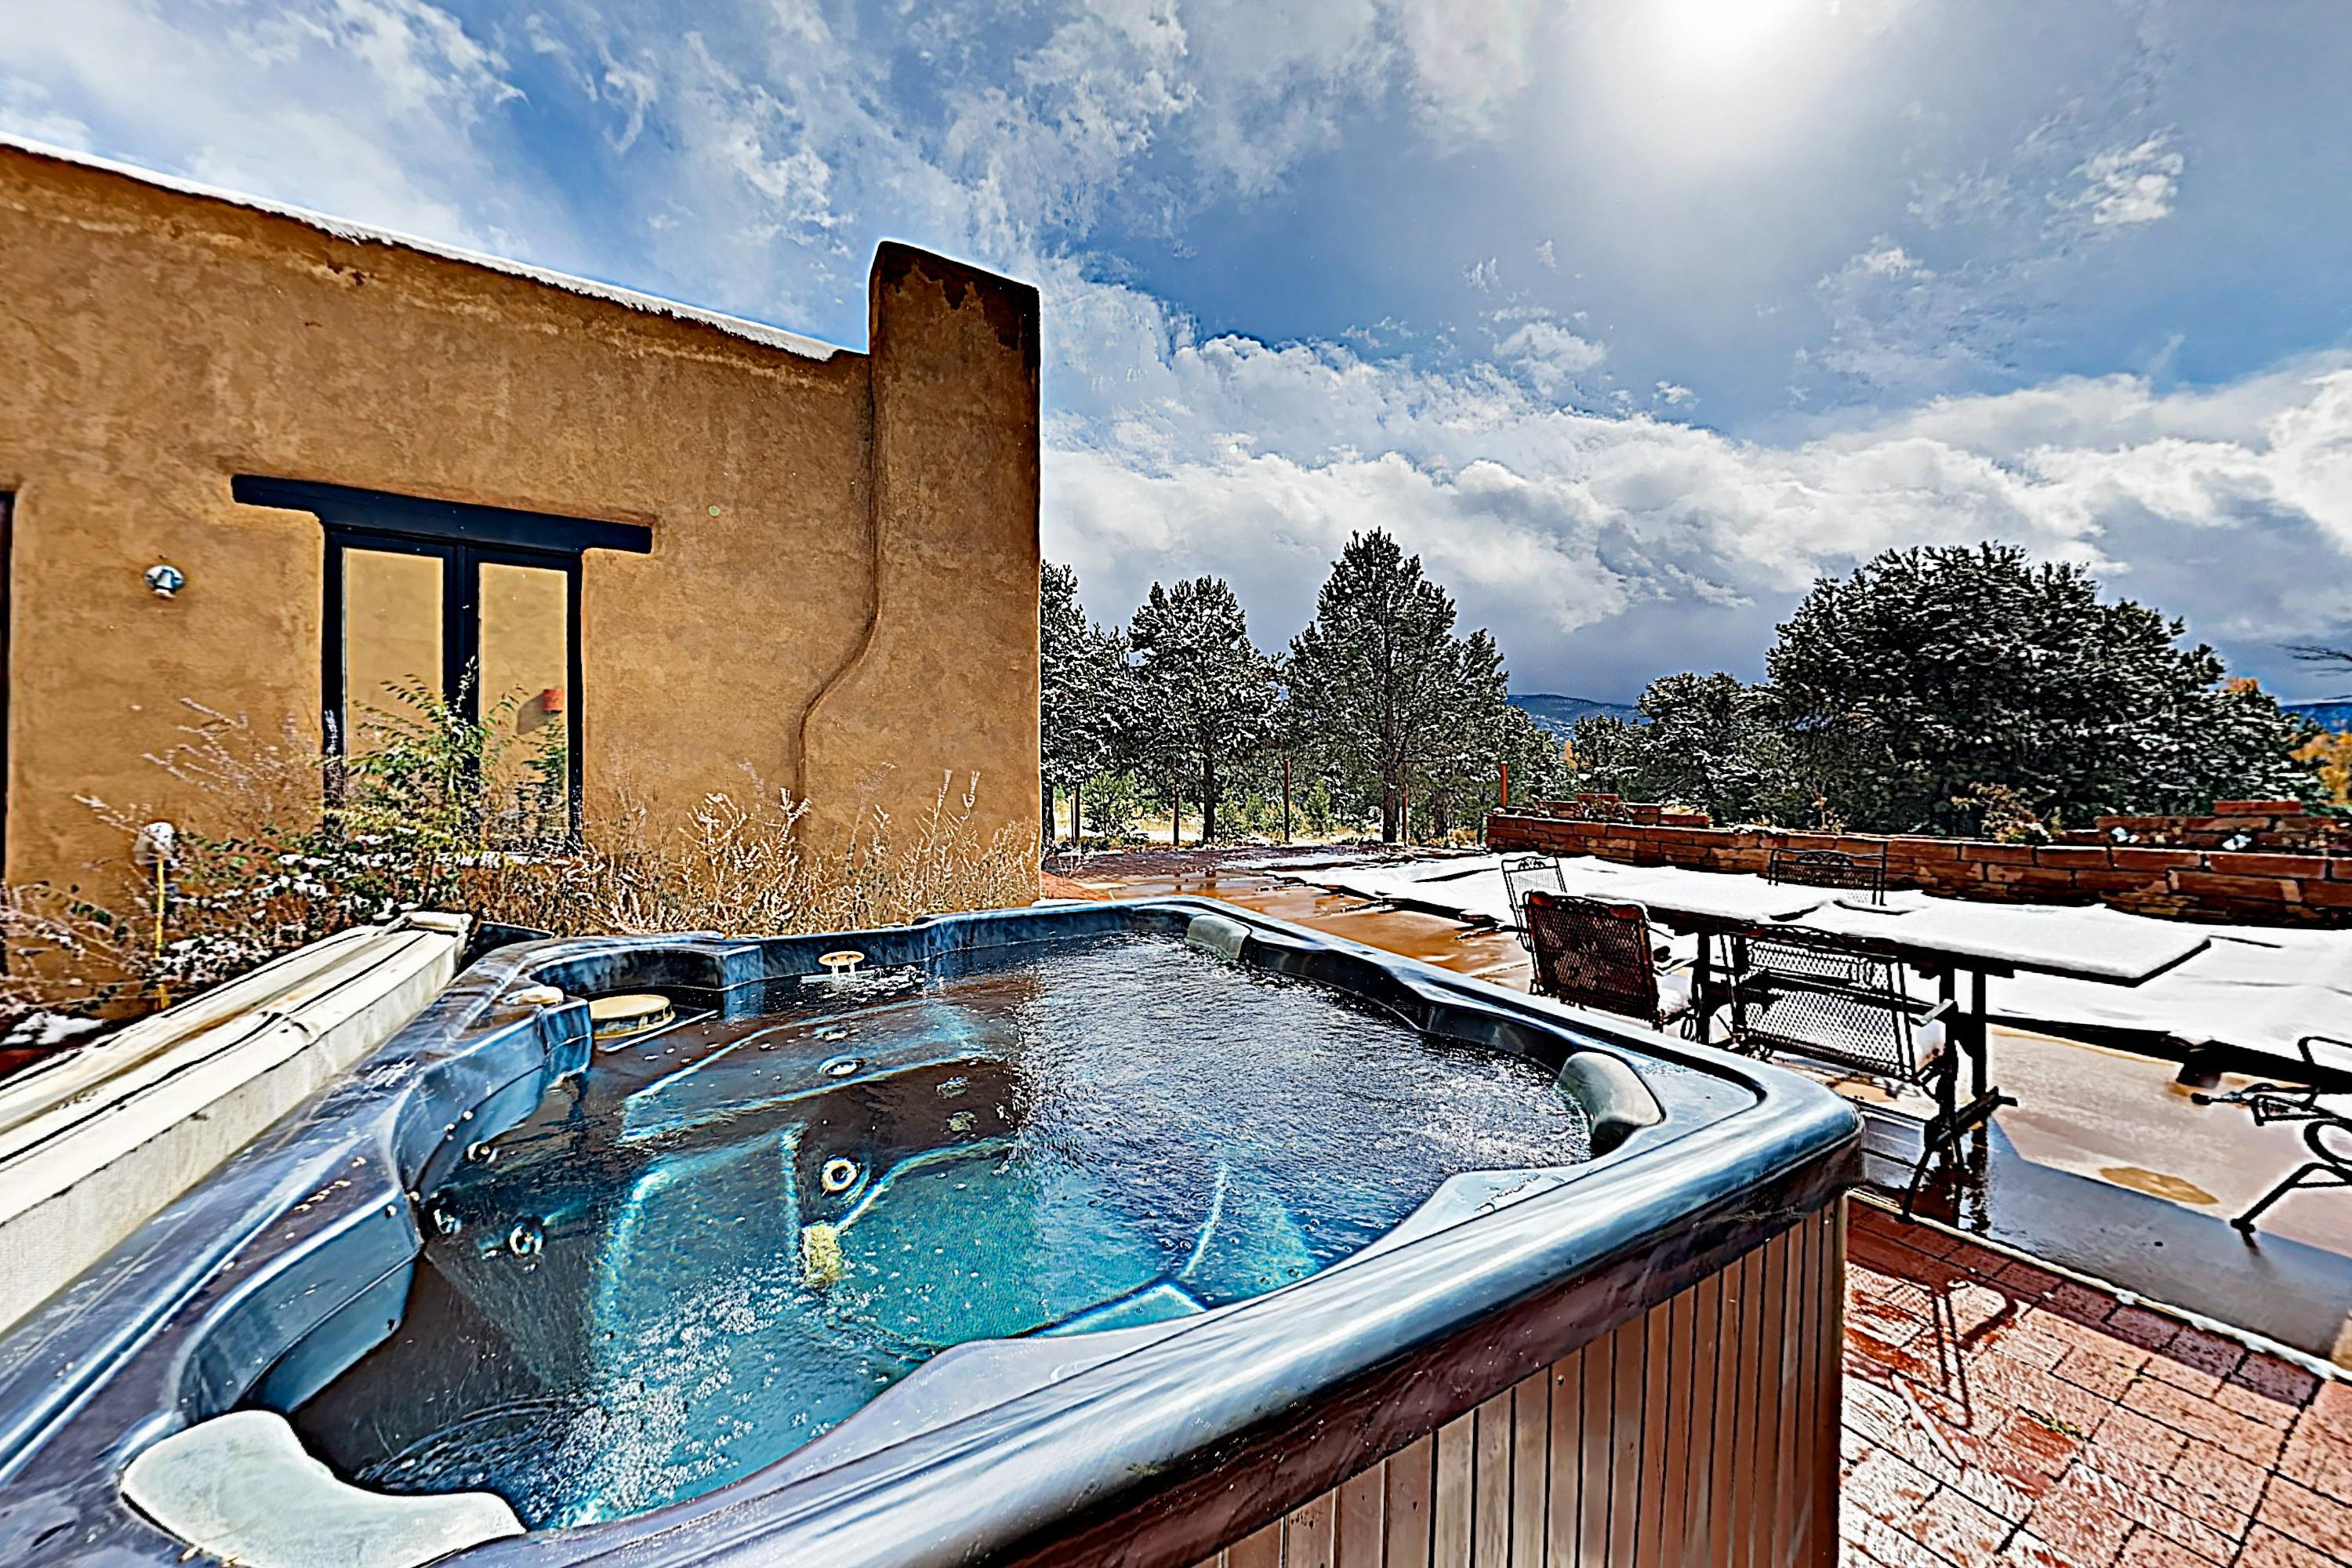 Take in majestic mountain views while you soak in the all-season hot tub.